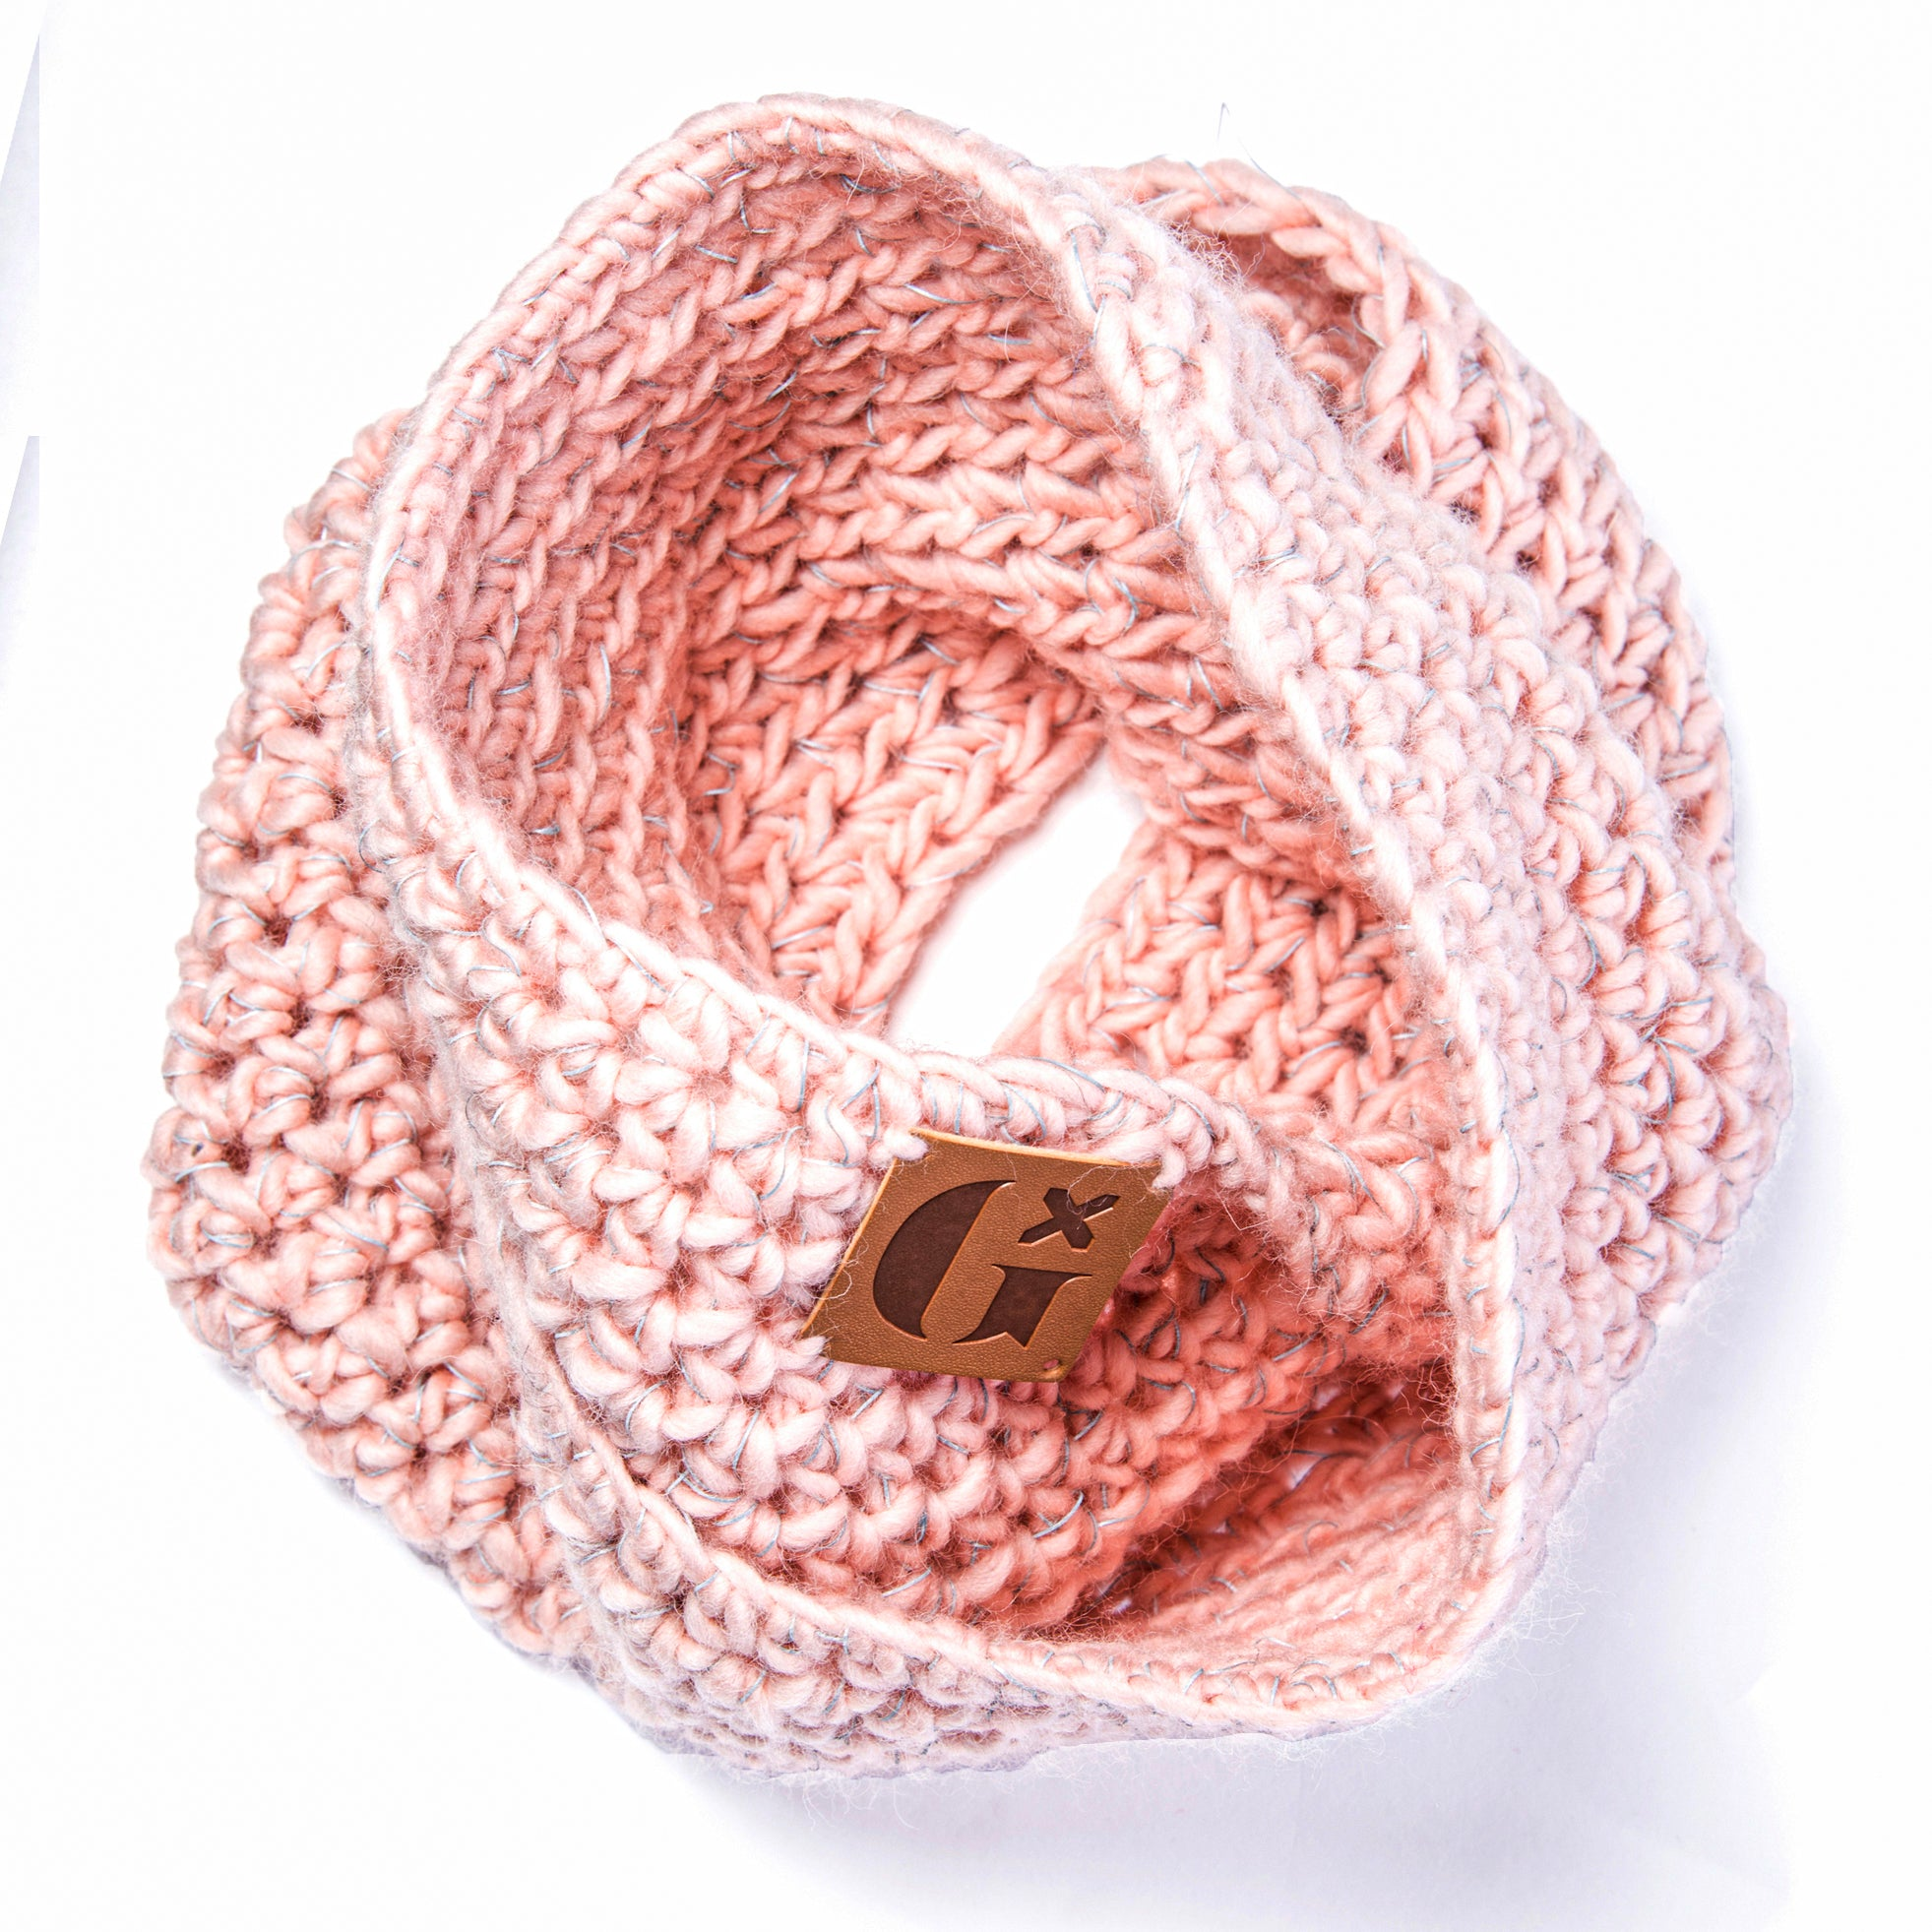 Hand-Knitted Light Reflective Twist Snood: Pink